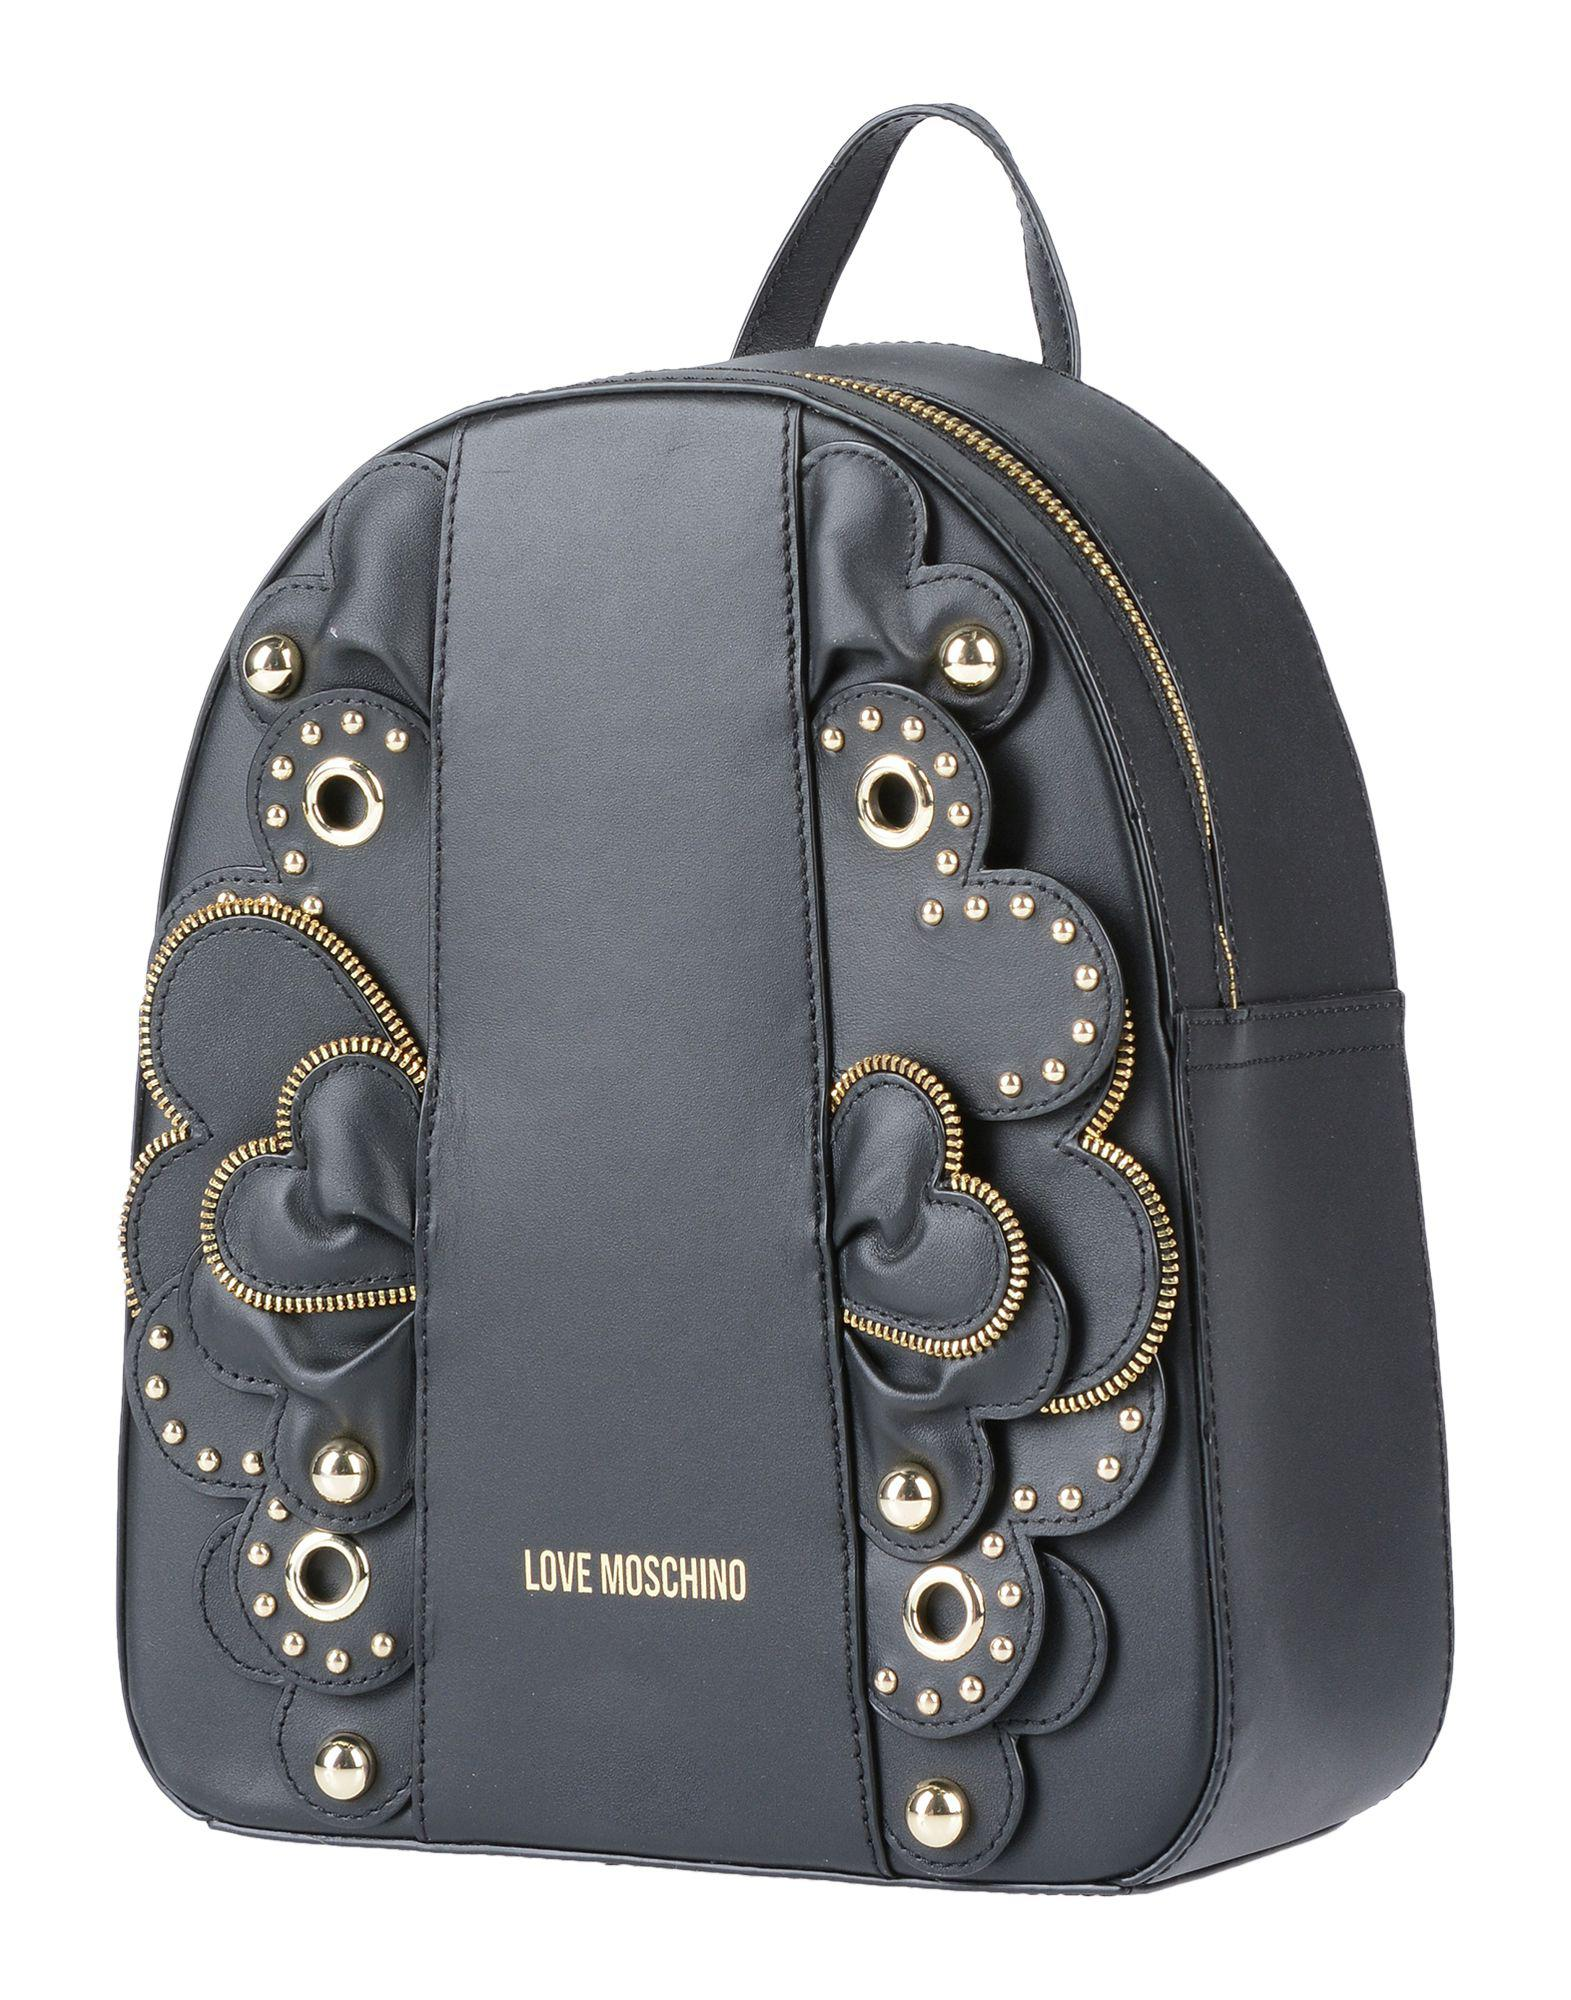 d0bfff74d0e91 Love Moschino - Black Backpacks   Fanny Packs - Lyst. View fullscreen